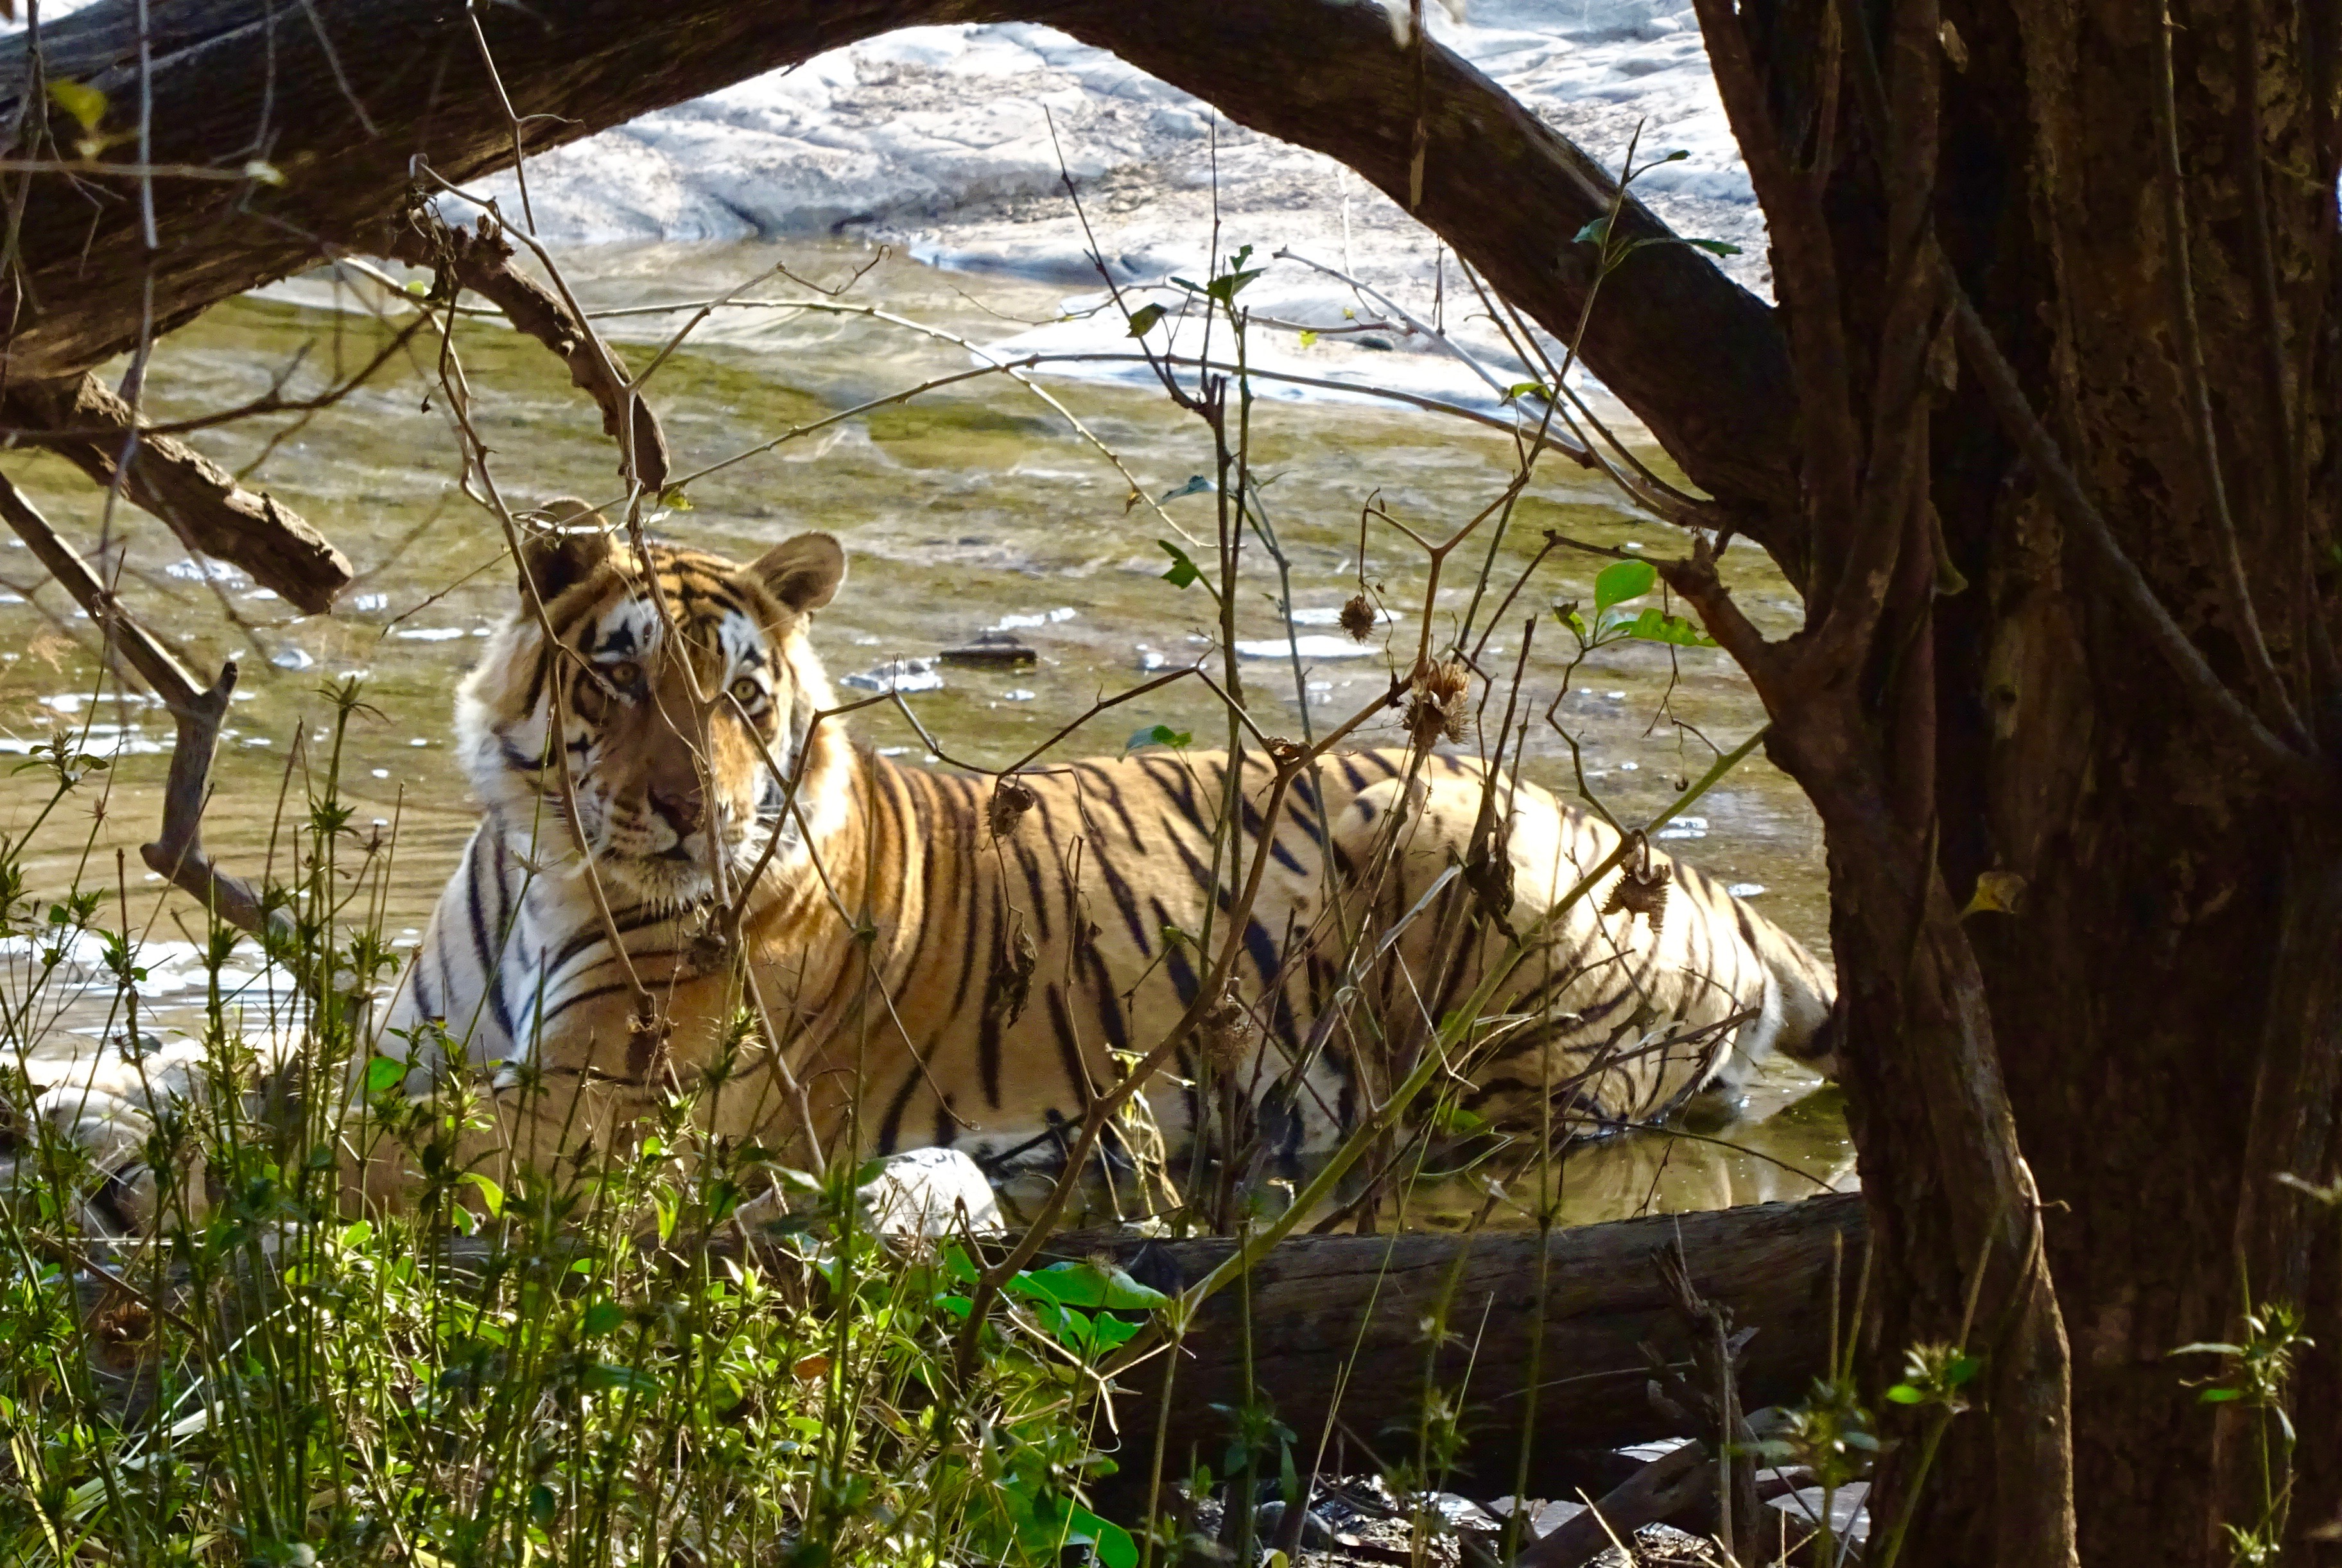 Tiger in Ranthambhore National Park, India - spinthewindrose.com